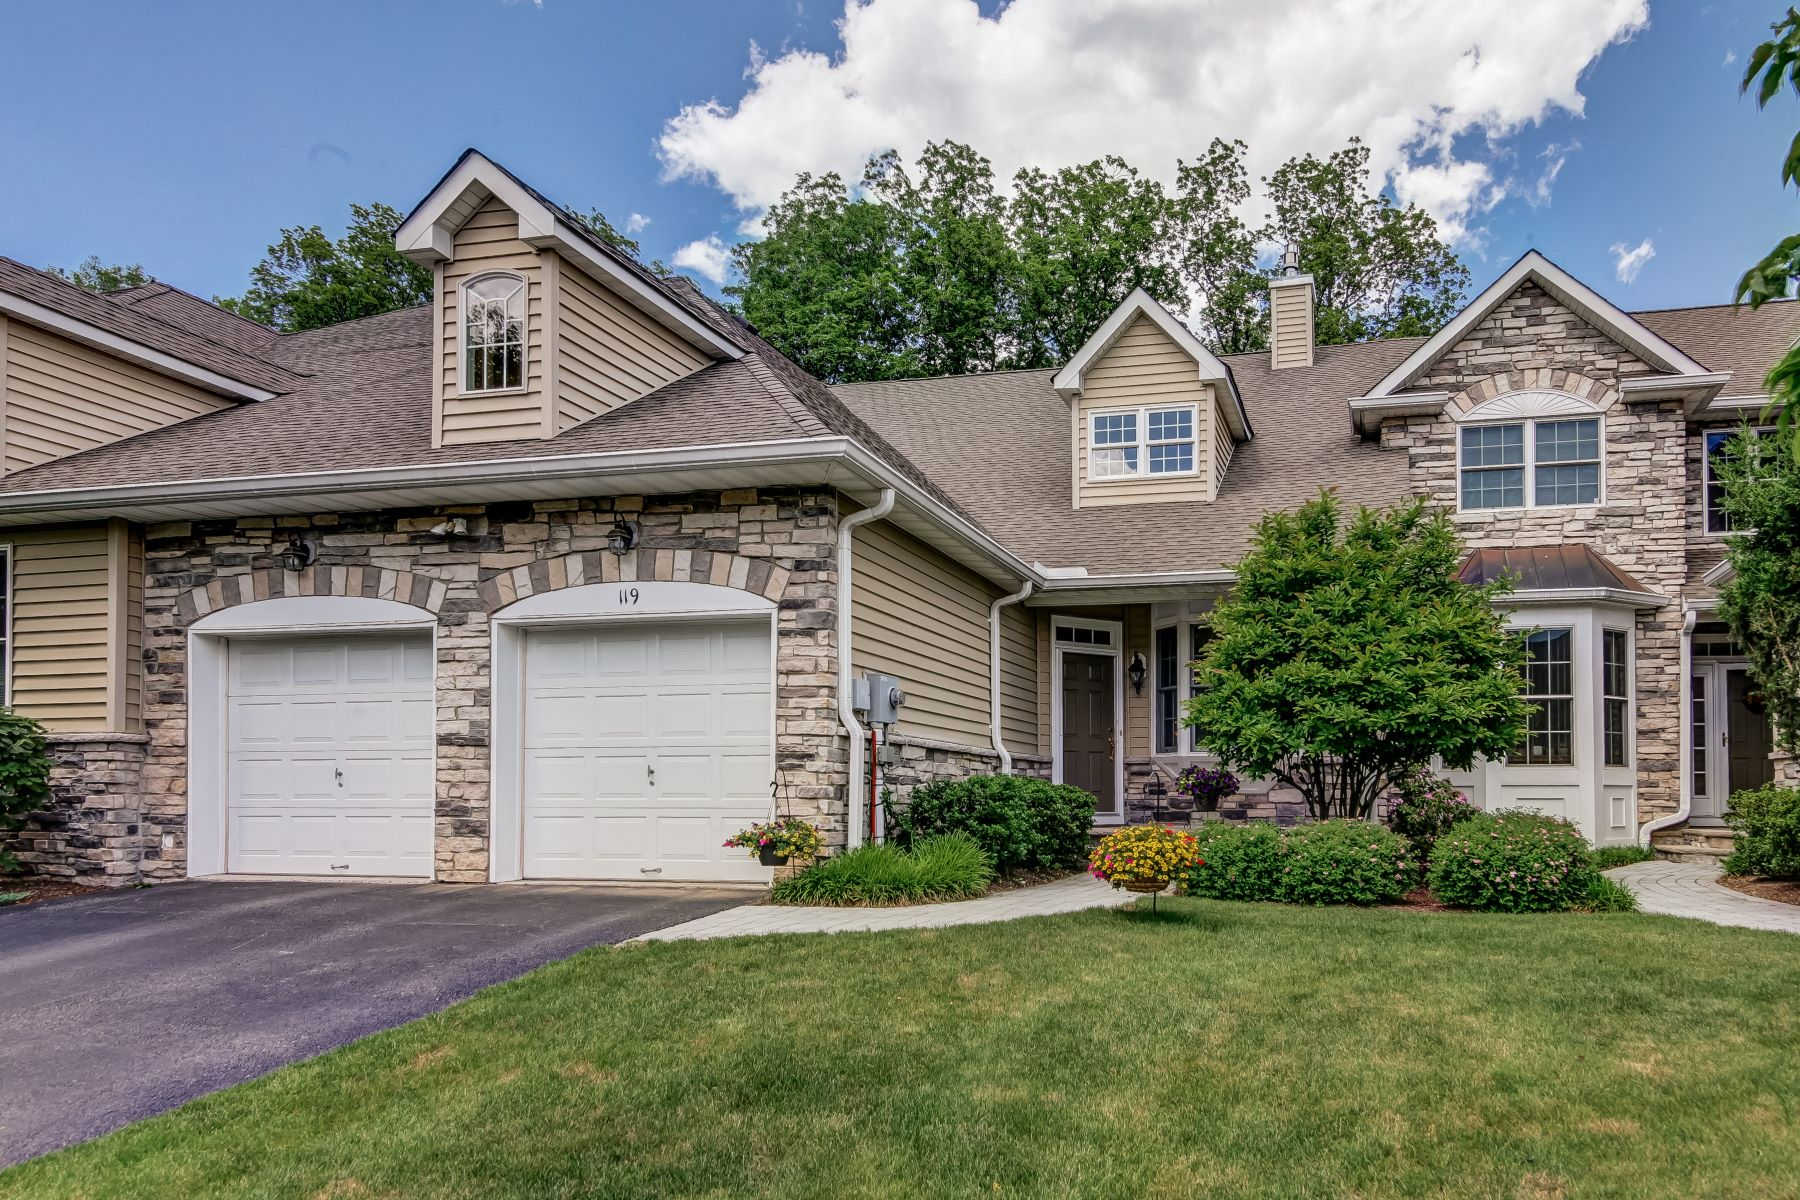 Townhouse for Sale at Exceptional Townhouse 119 Schindler Court Parsippany, New Jersey 07054 United States